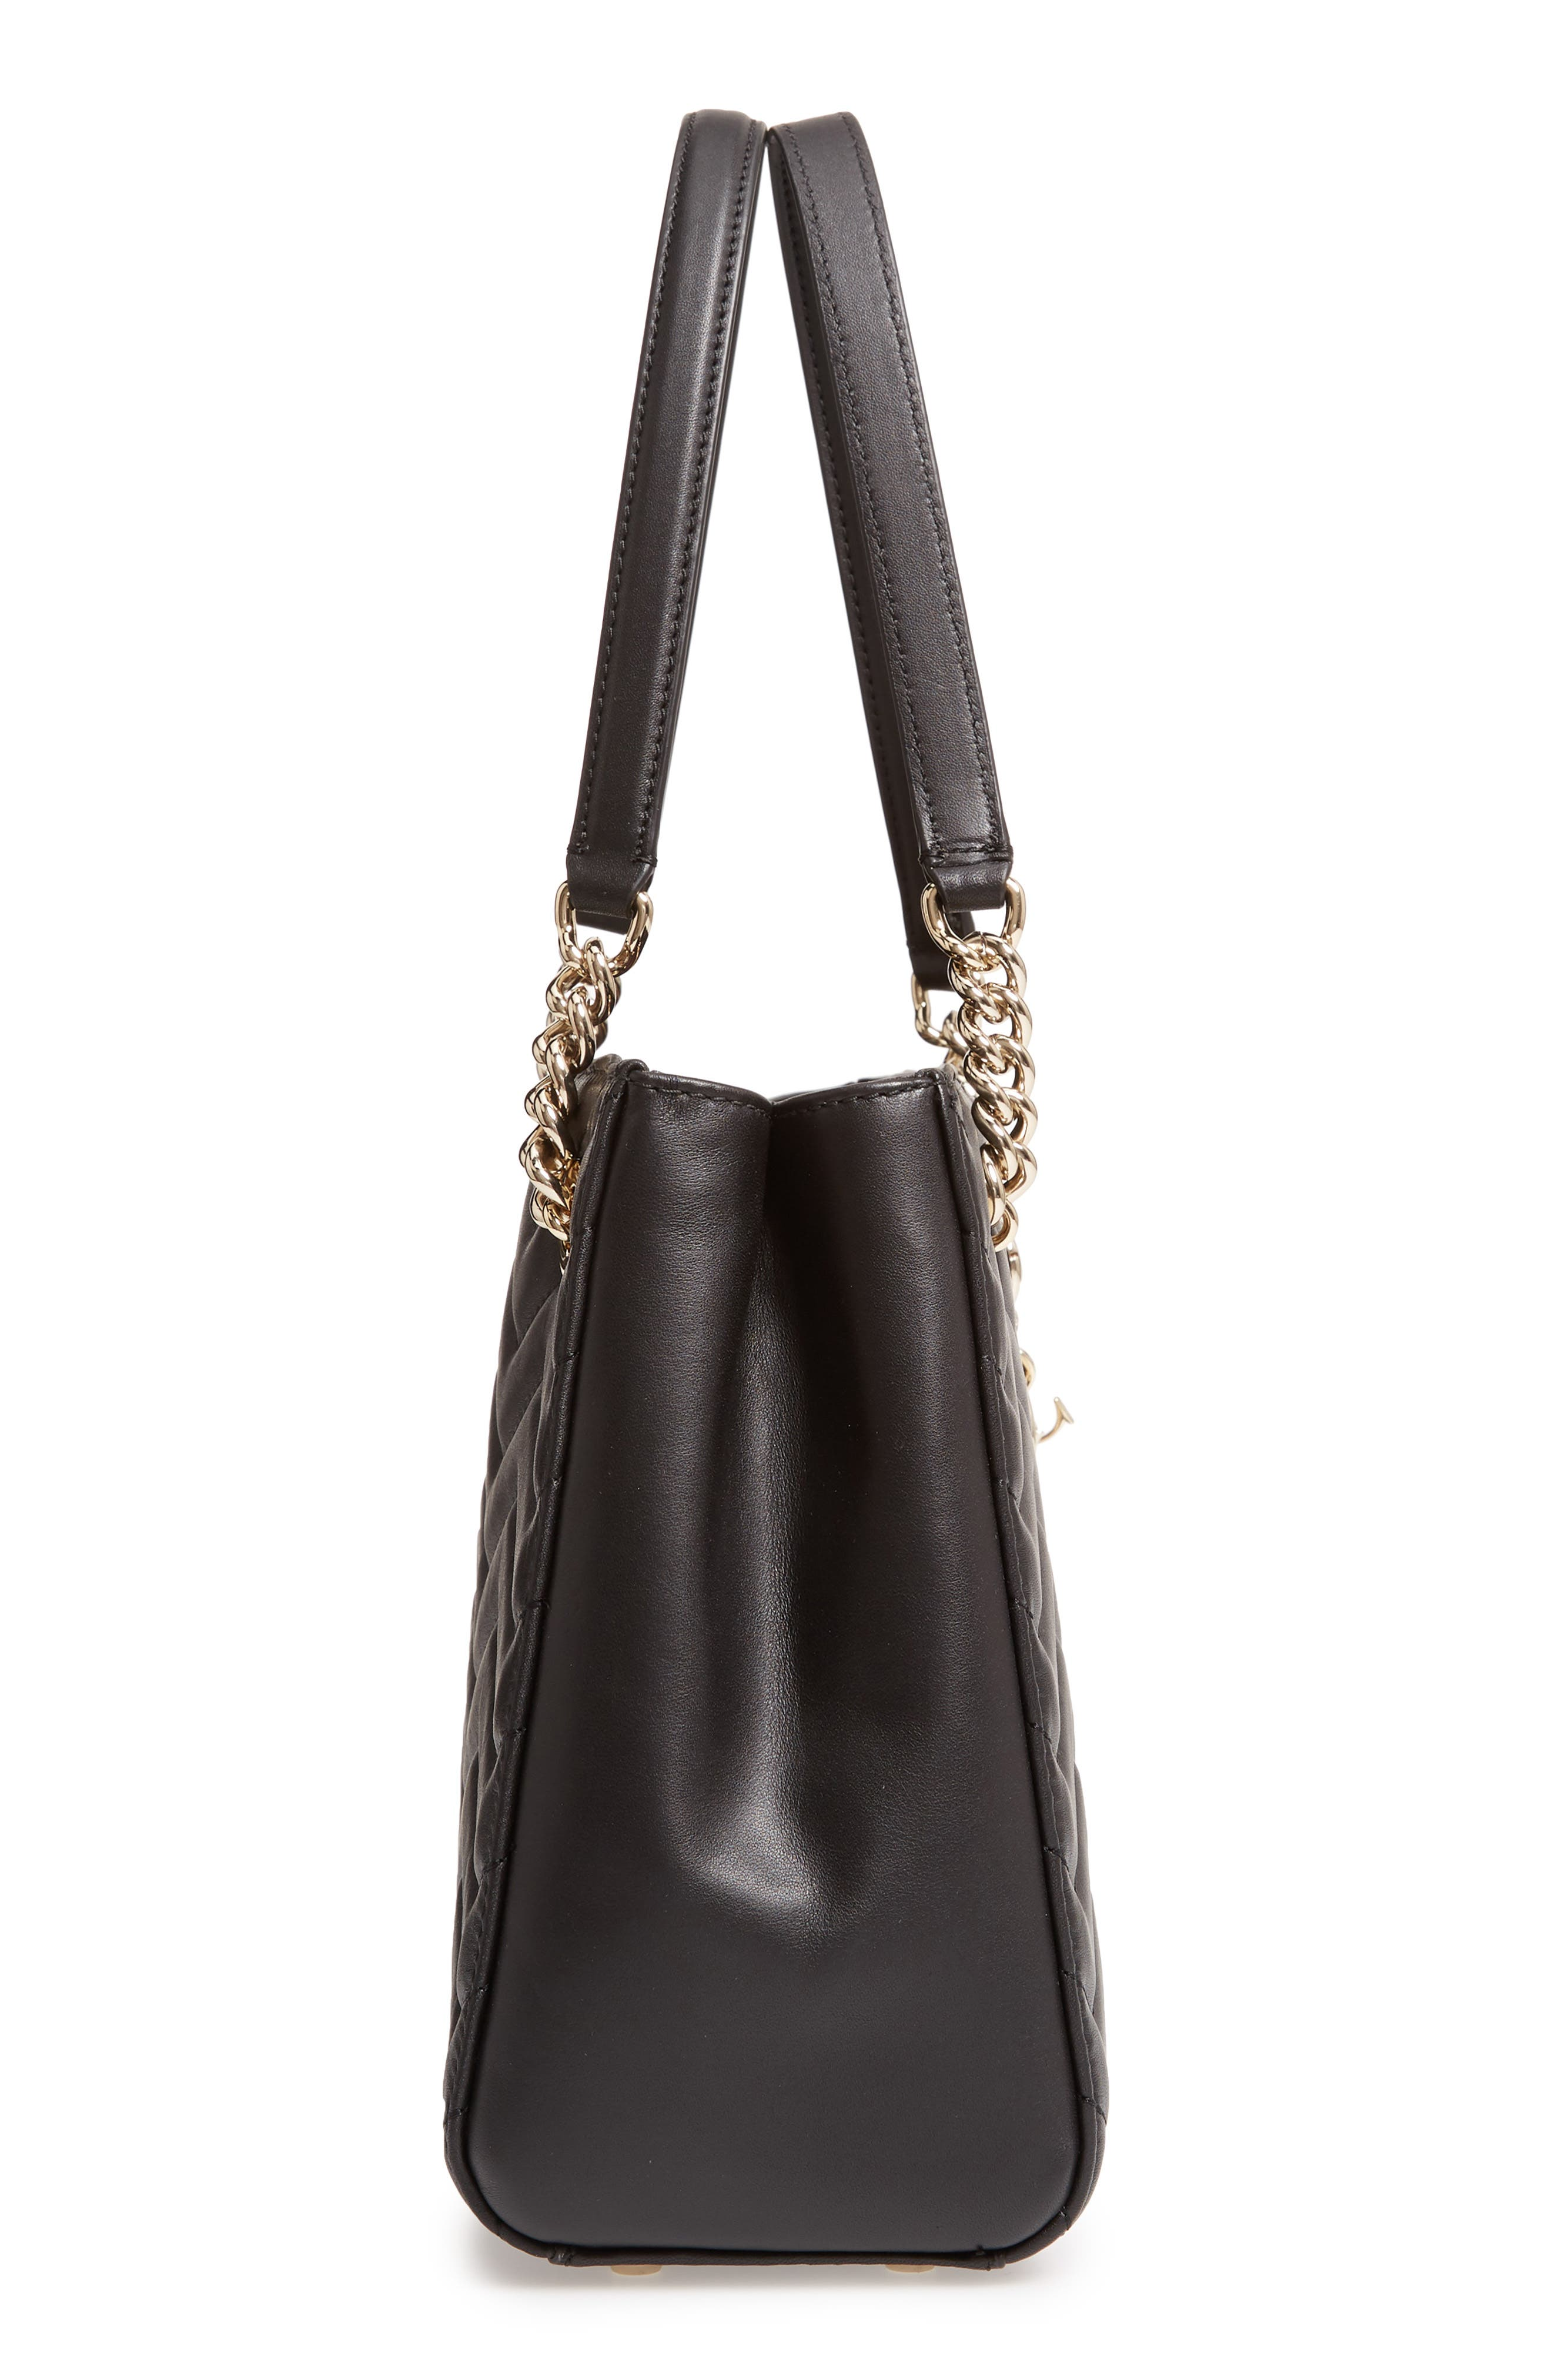 reese park - small courtnee leather tote,                             Alternate thumbnail 5, color,                             001